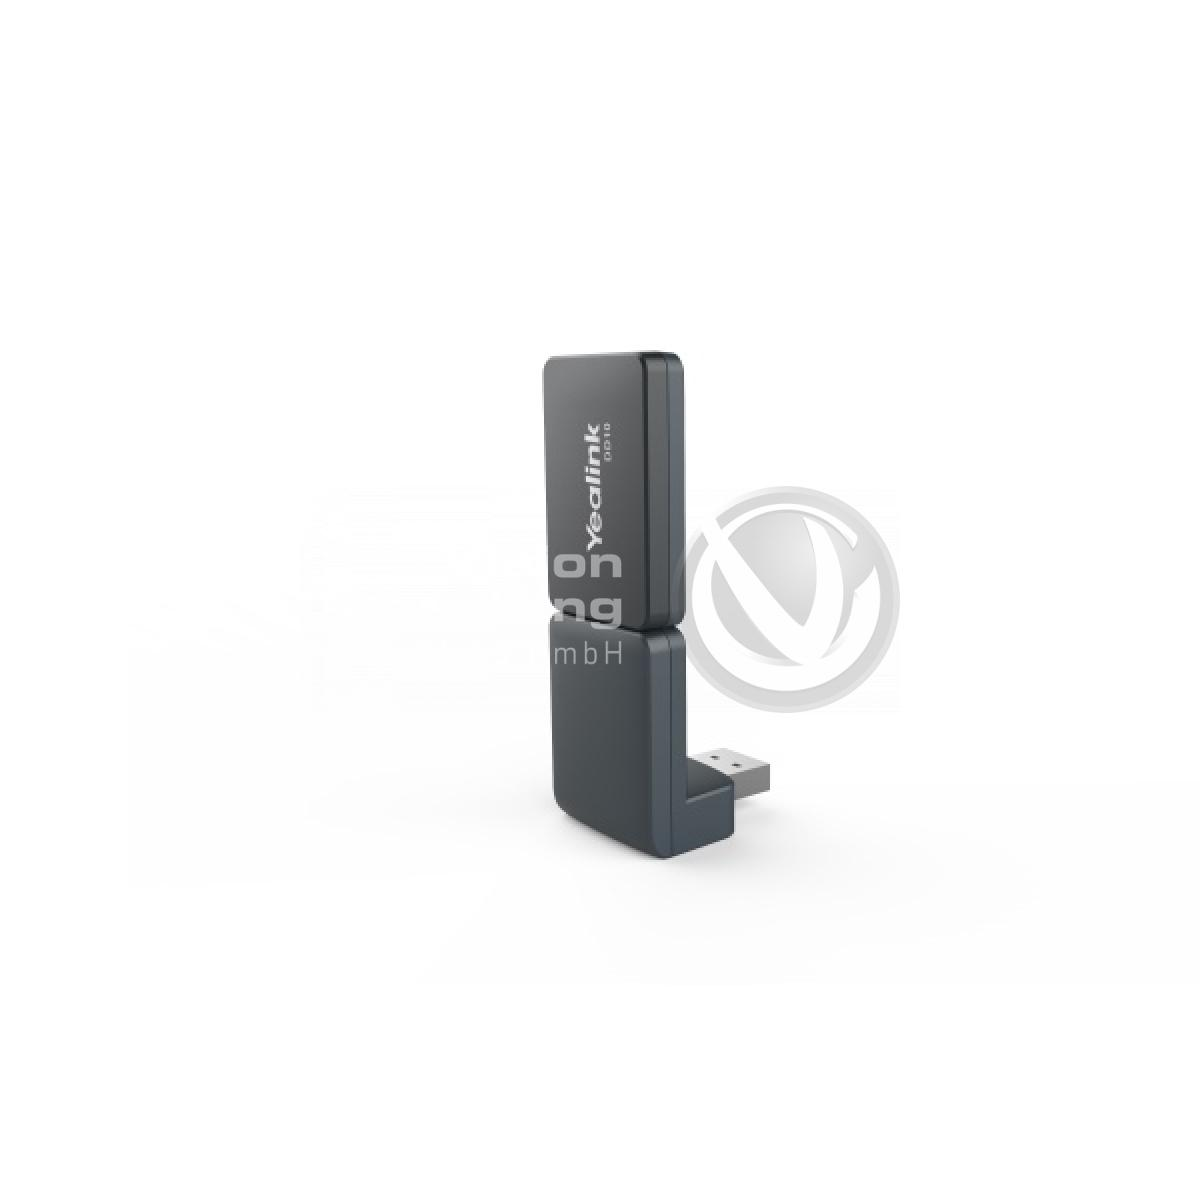 Yealink SIP zub. DD10K DECT Dongle for T41S / T42S